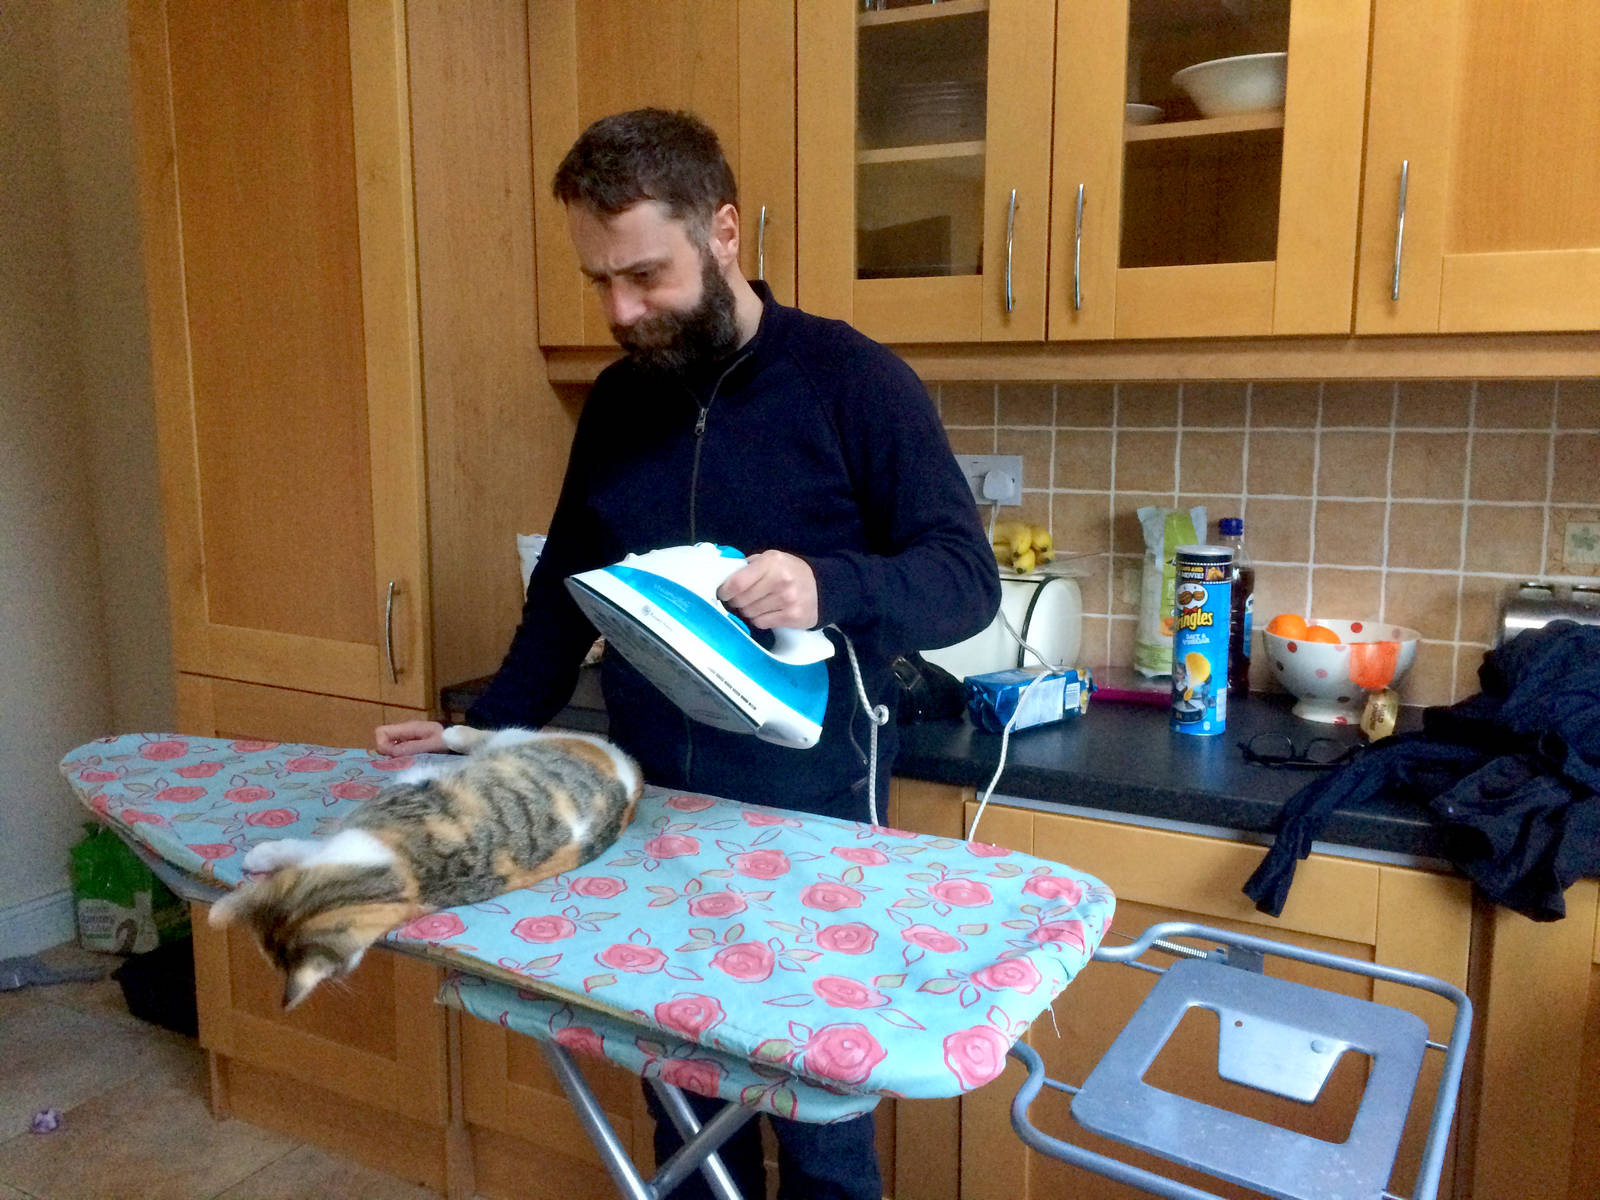 Cookie 'helps' me iron